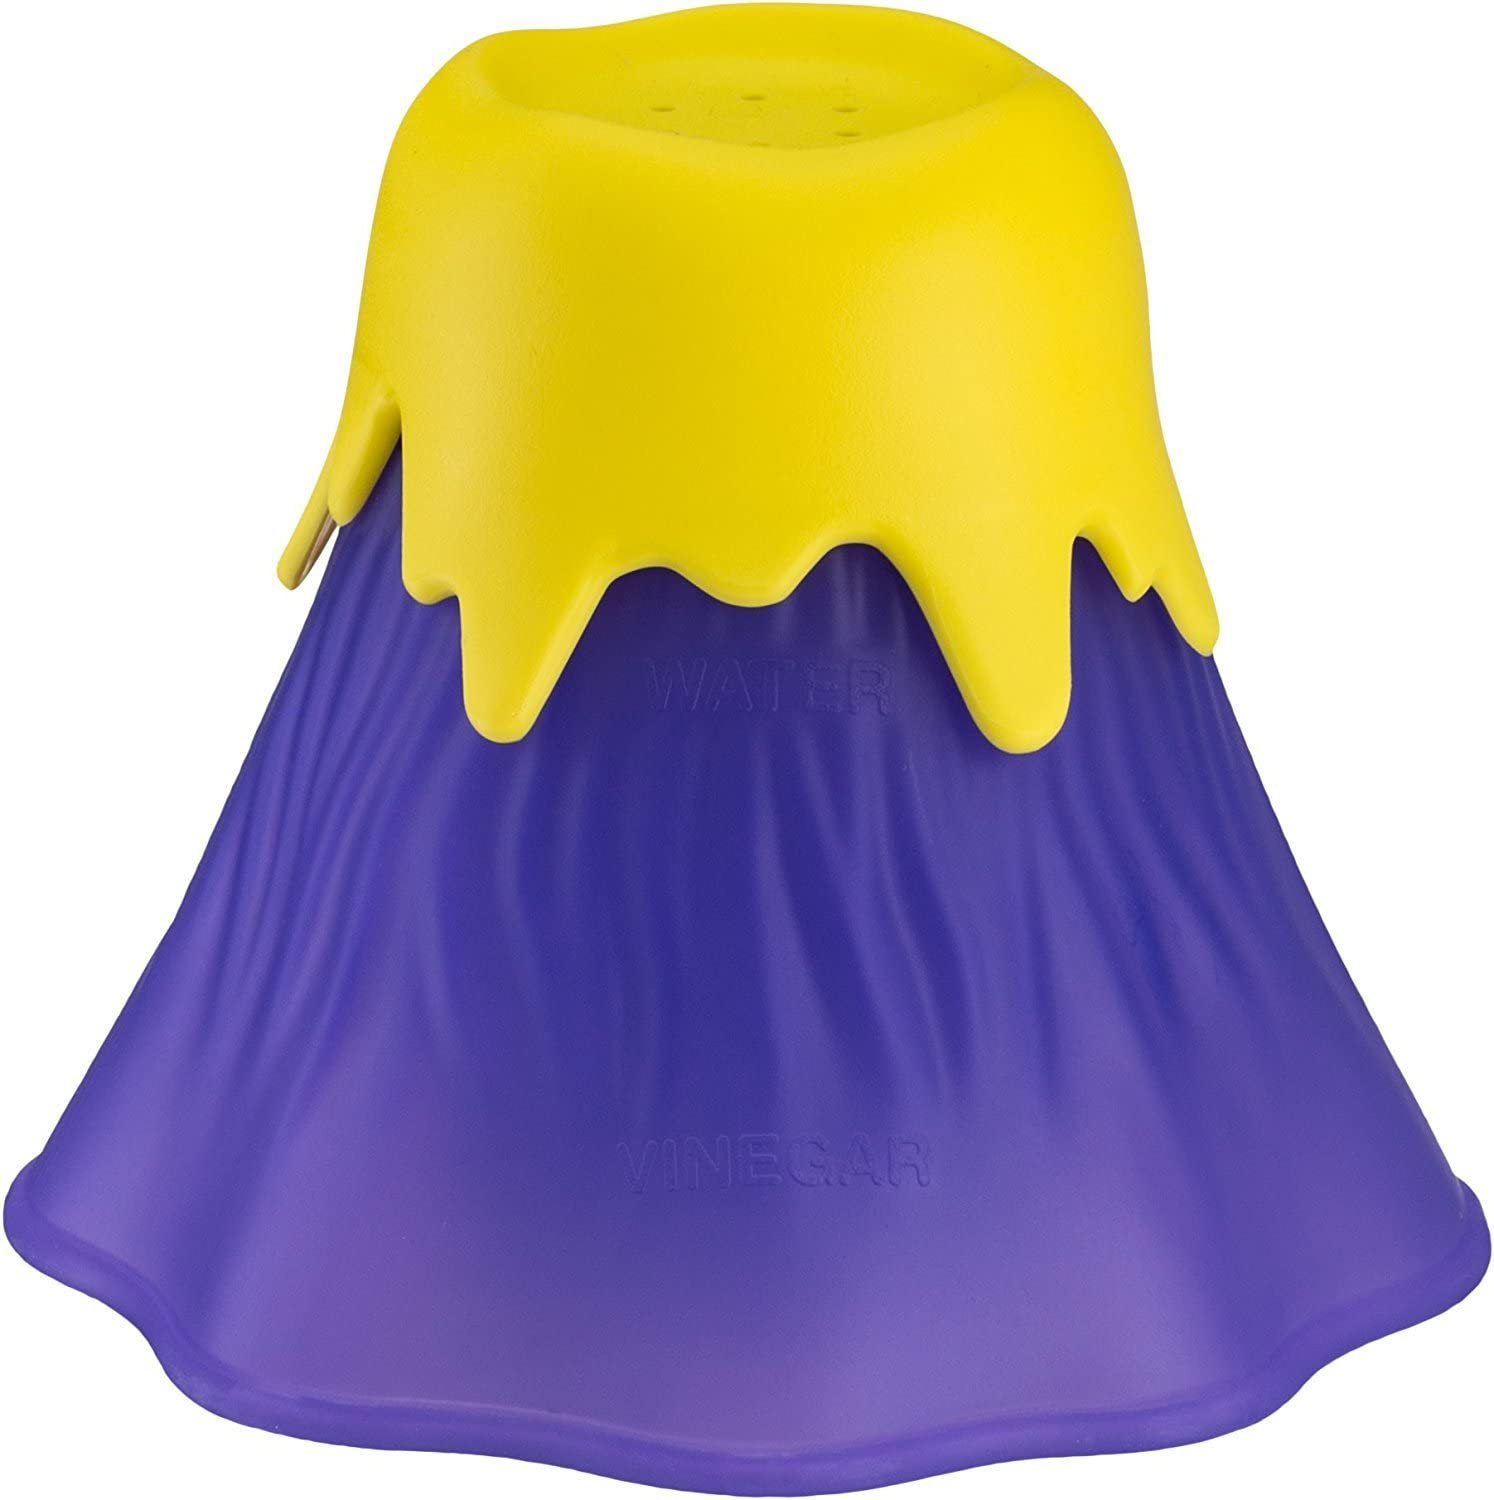 Erupting Volcano Microwave Cleaner, Kitchen Dirt Cleaner, Fun, Safe And Easy To Use (Purple)